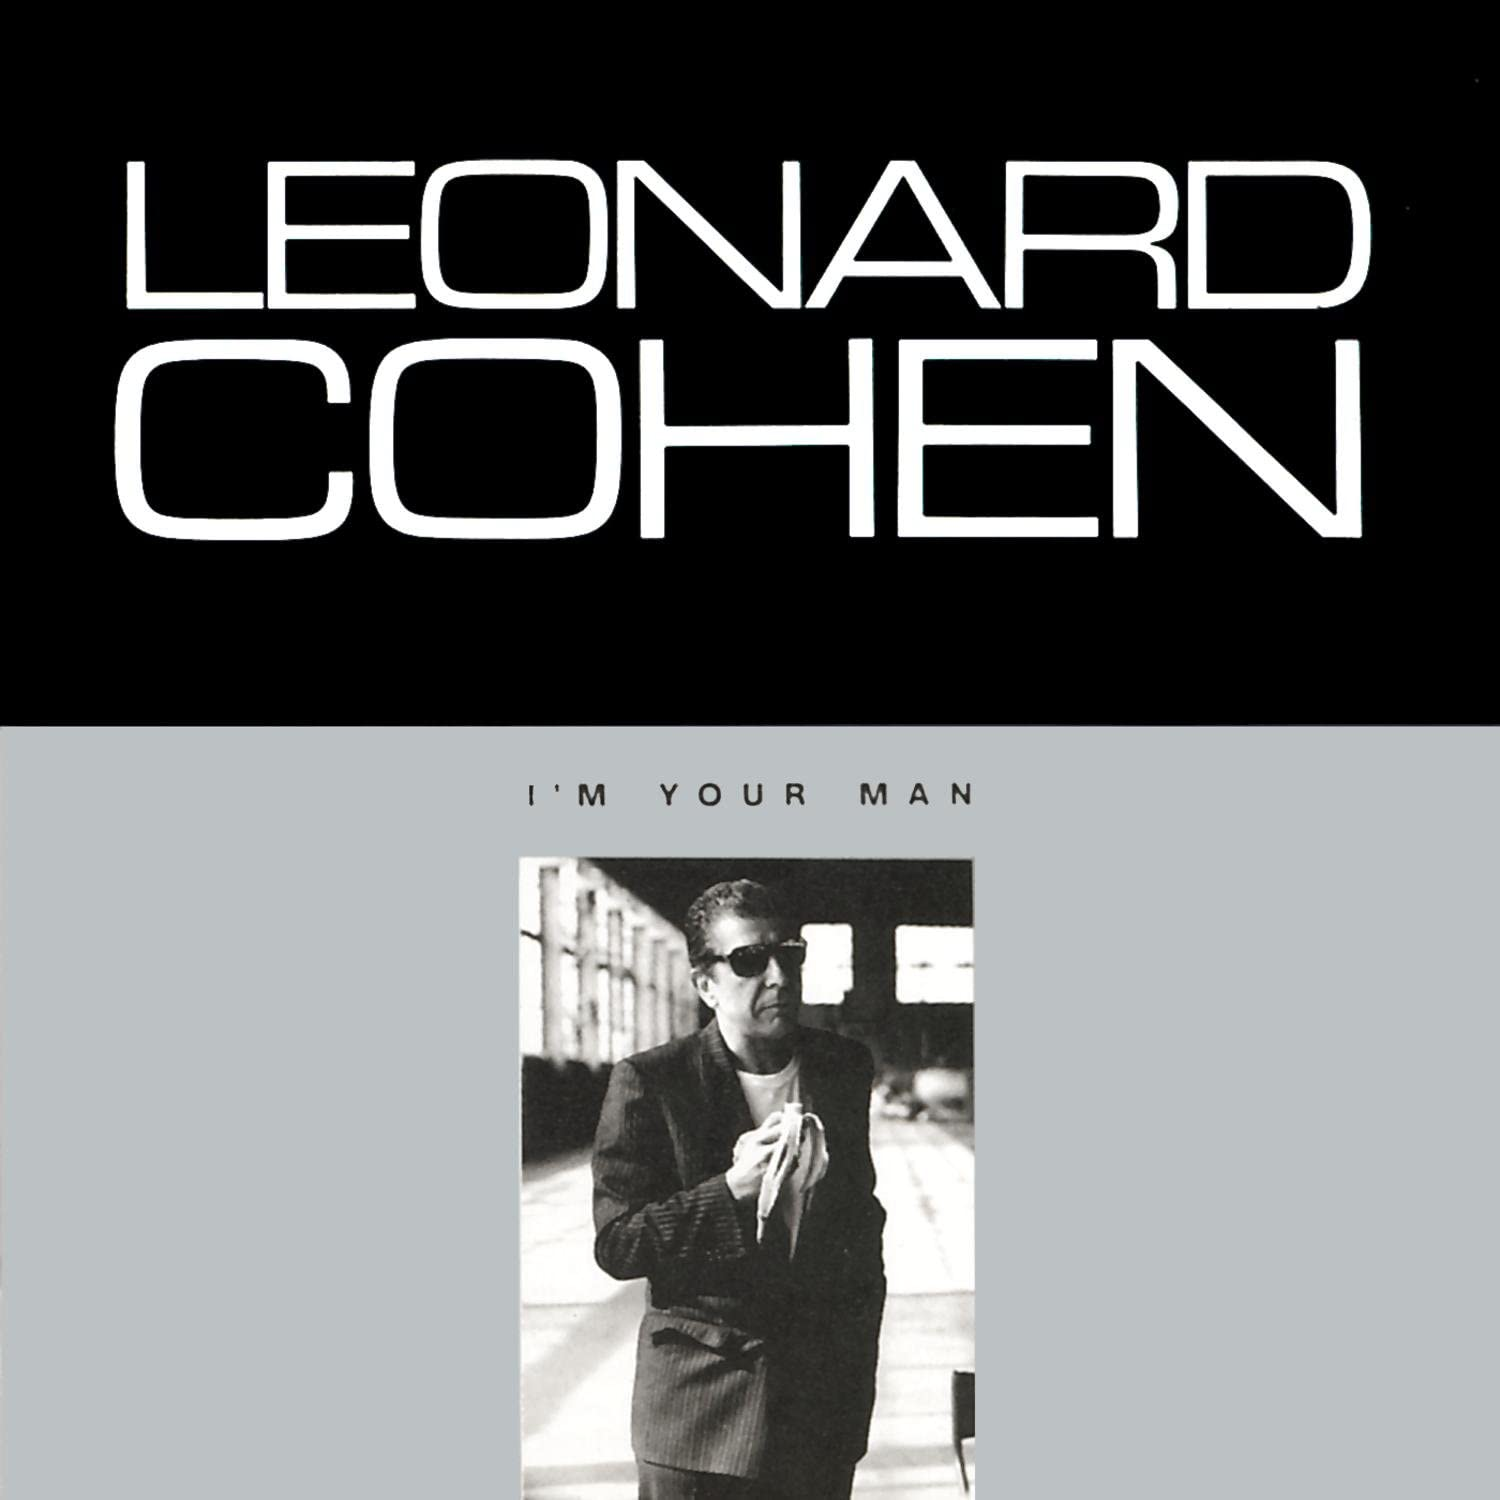 Leonard Cohen - I'm Your Man - Gears For Ears